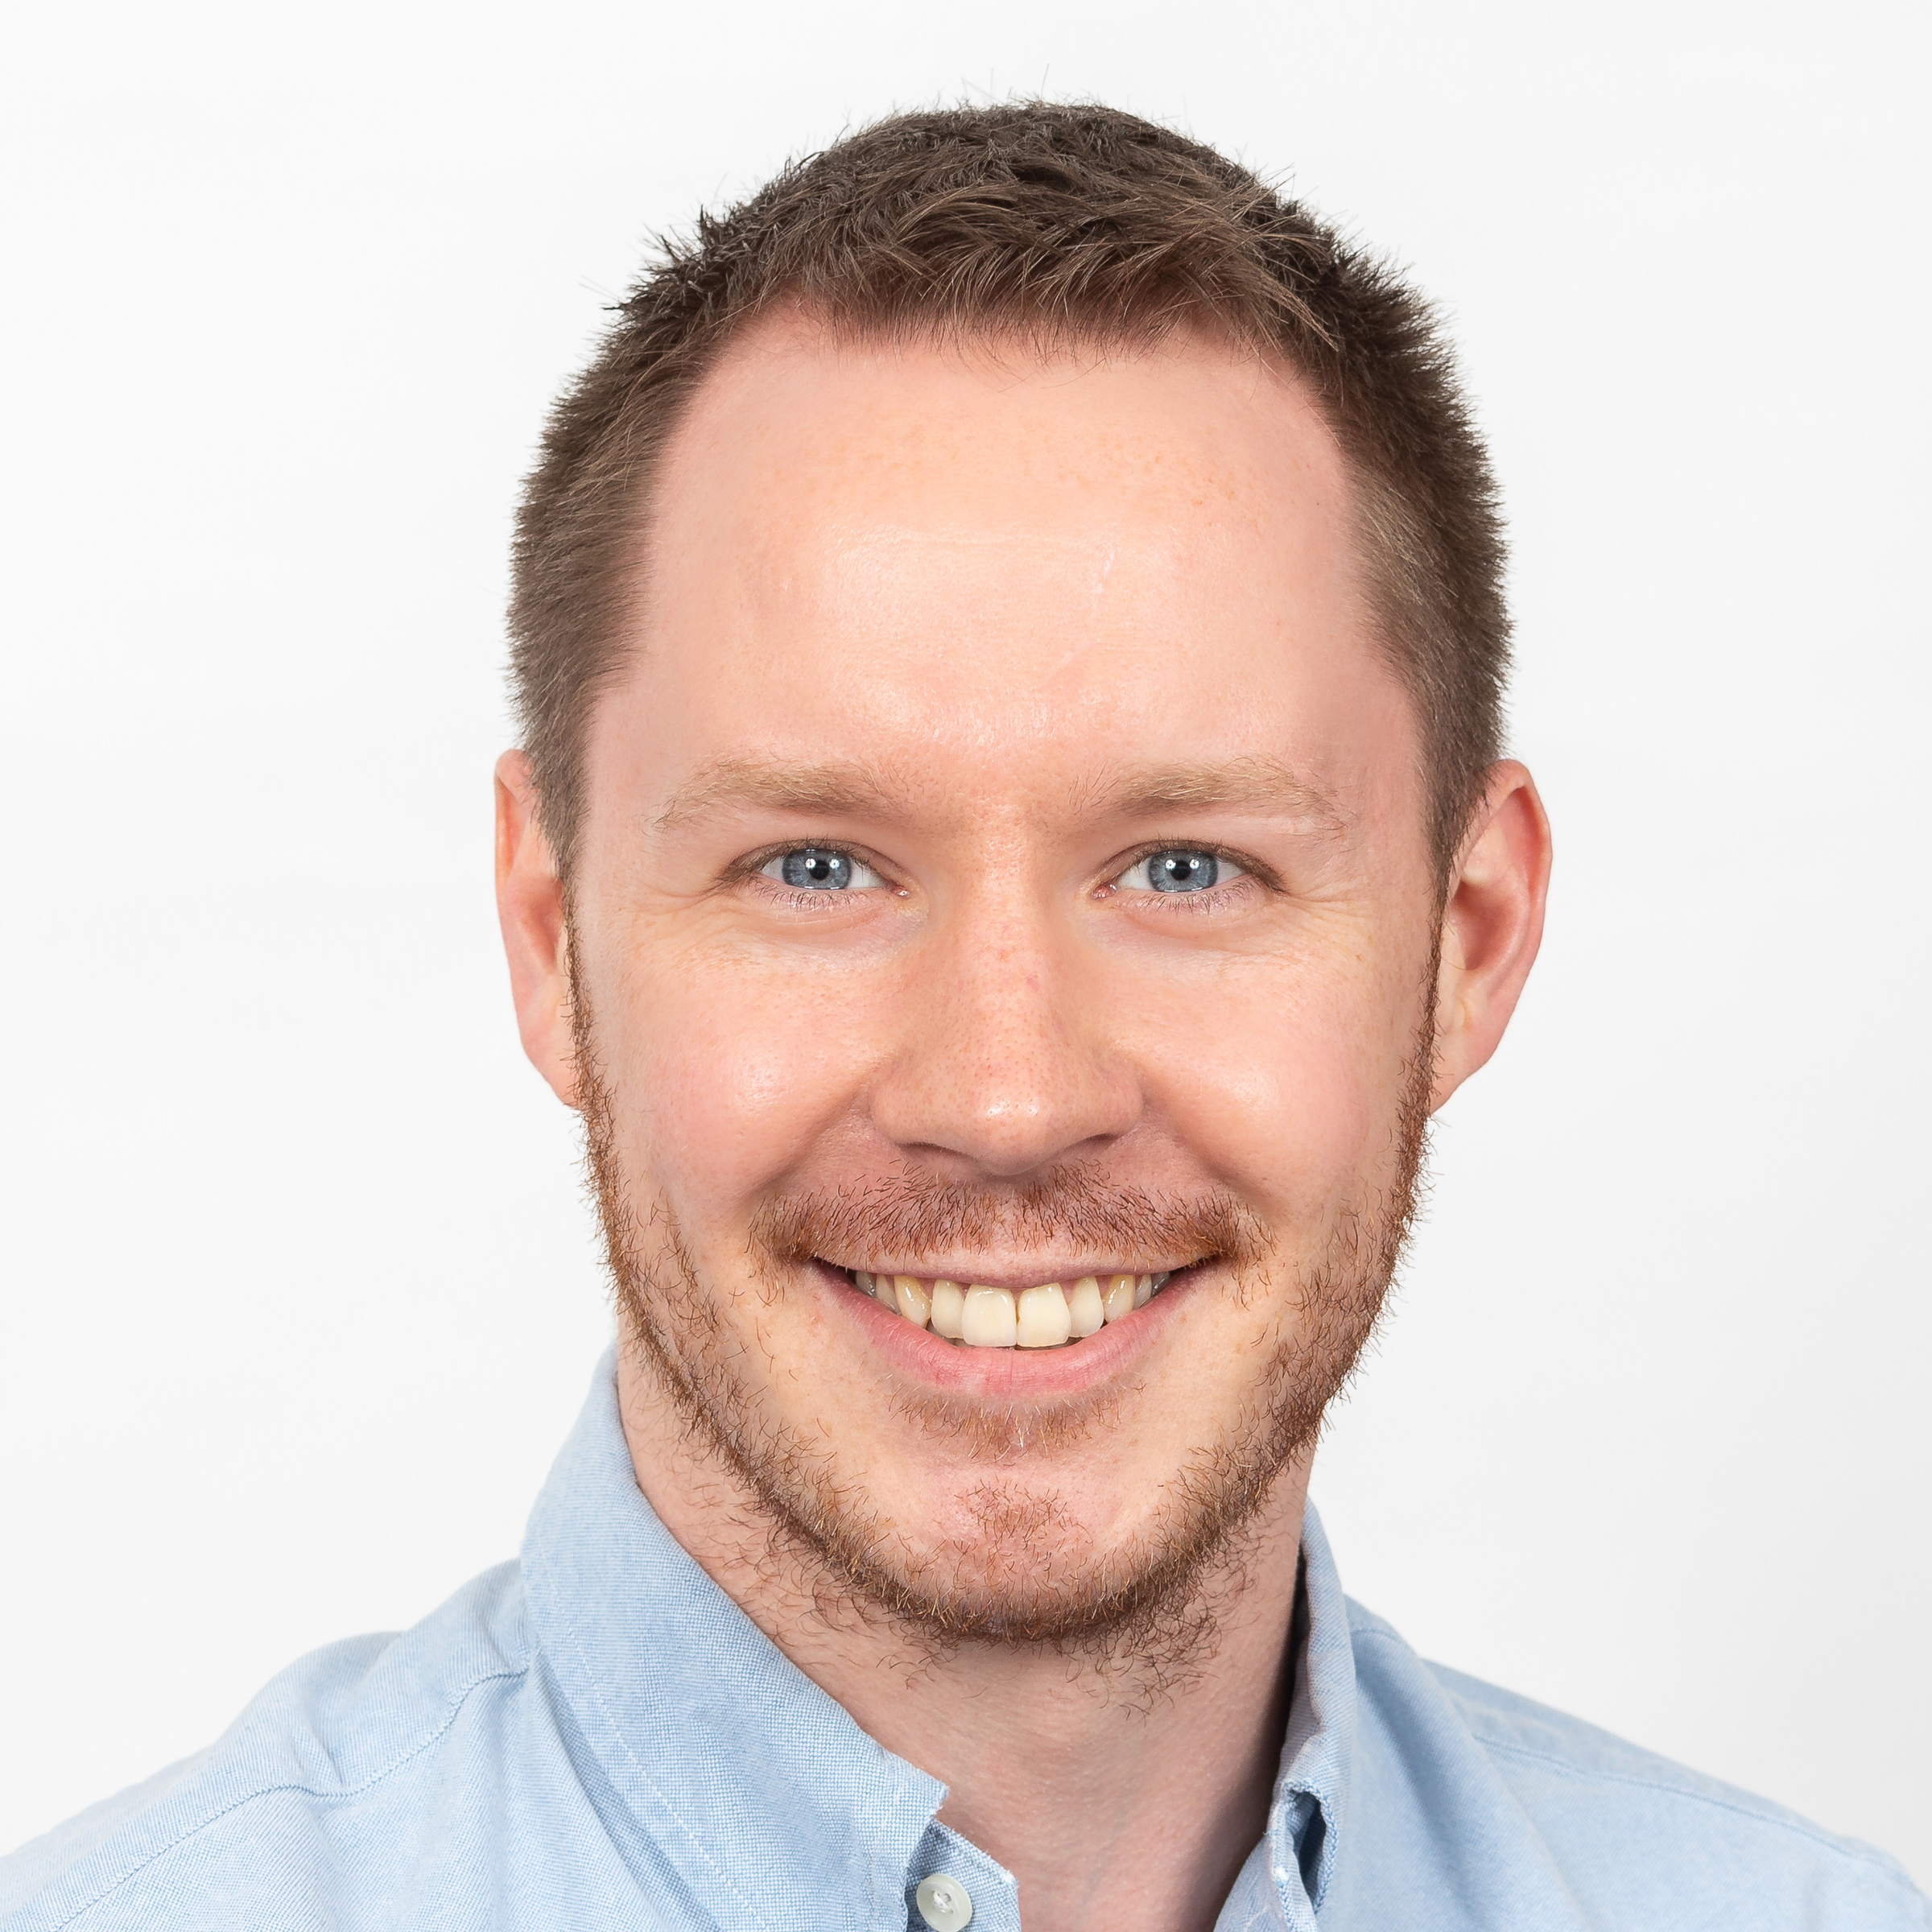 CHRISTIAN GILSON,  HEAD OF DATA SCIENCE  Christian is a co-founder and Head of Data Science at Hivemind, where he leads the team of data scientists.   READ MORE